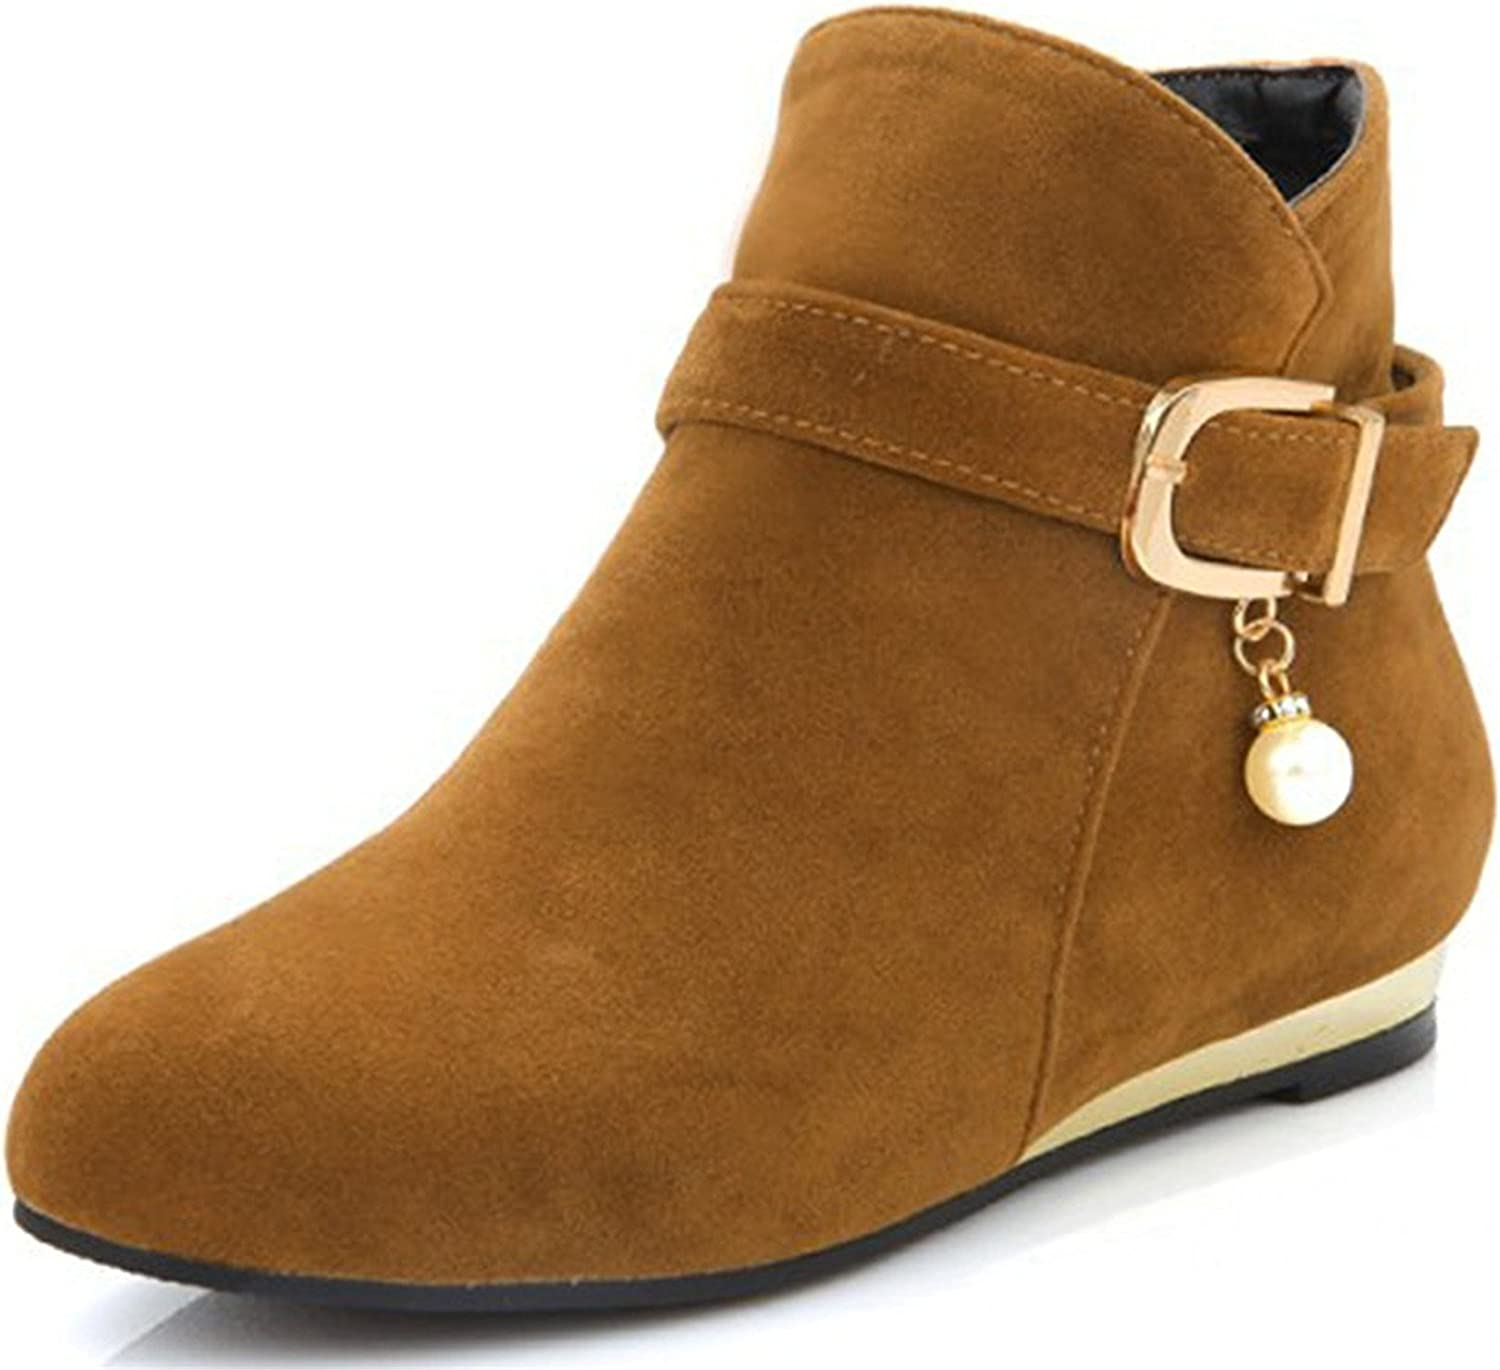 Davikey Women's Sweet Strappy Buckle Round Toe Booties Wedge Low Heel Side Zipper Ankle Boots